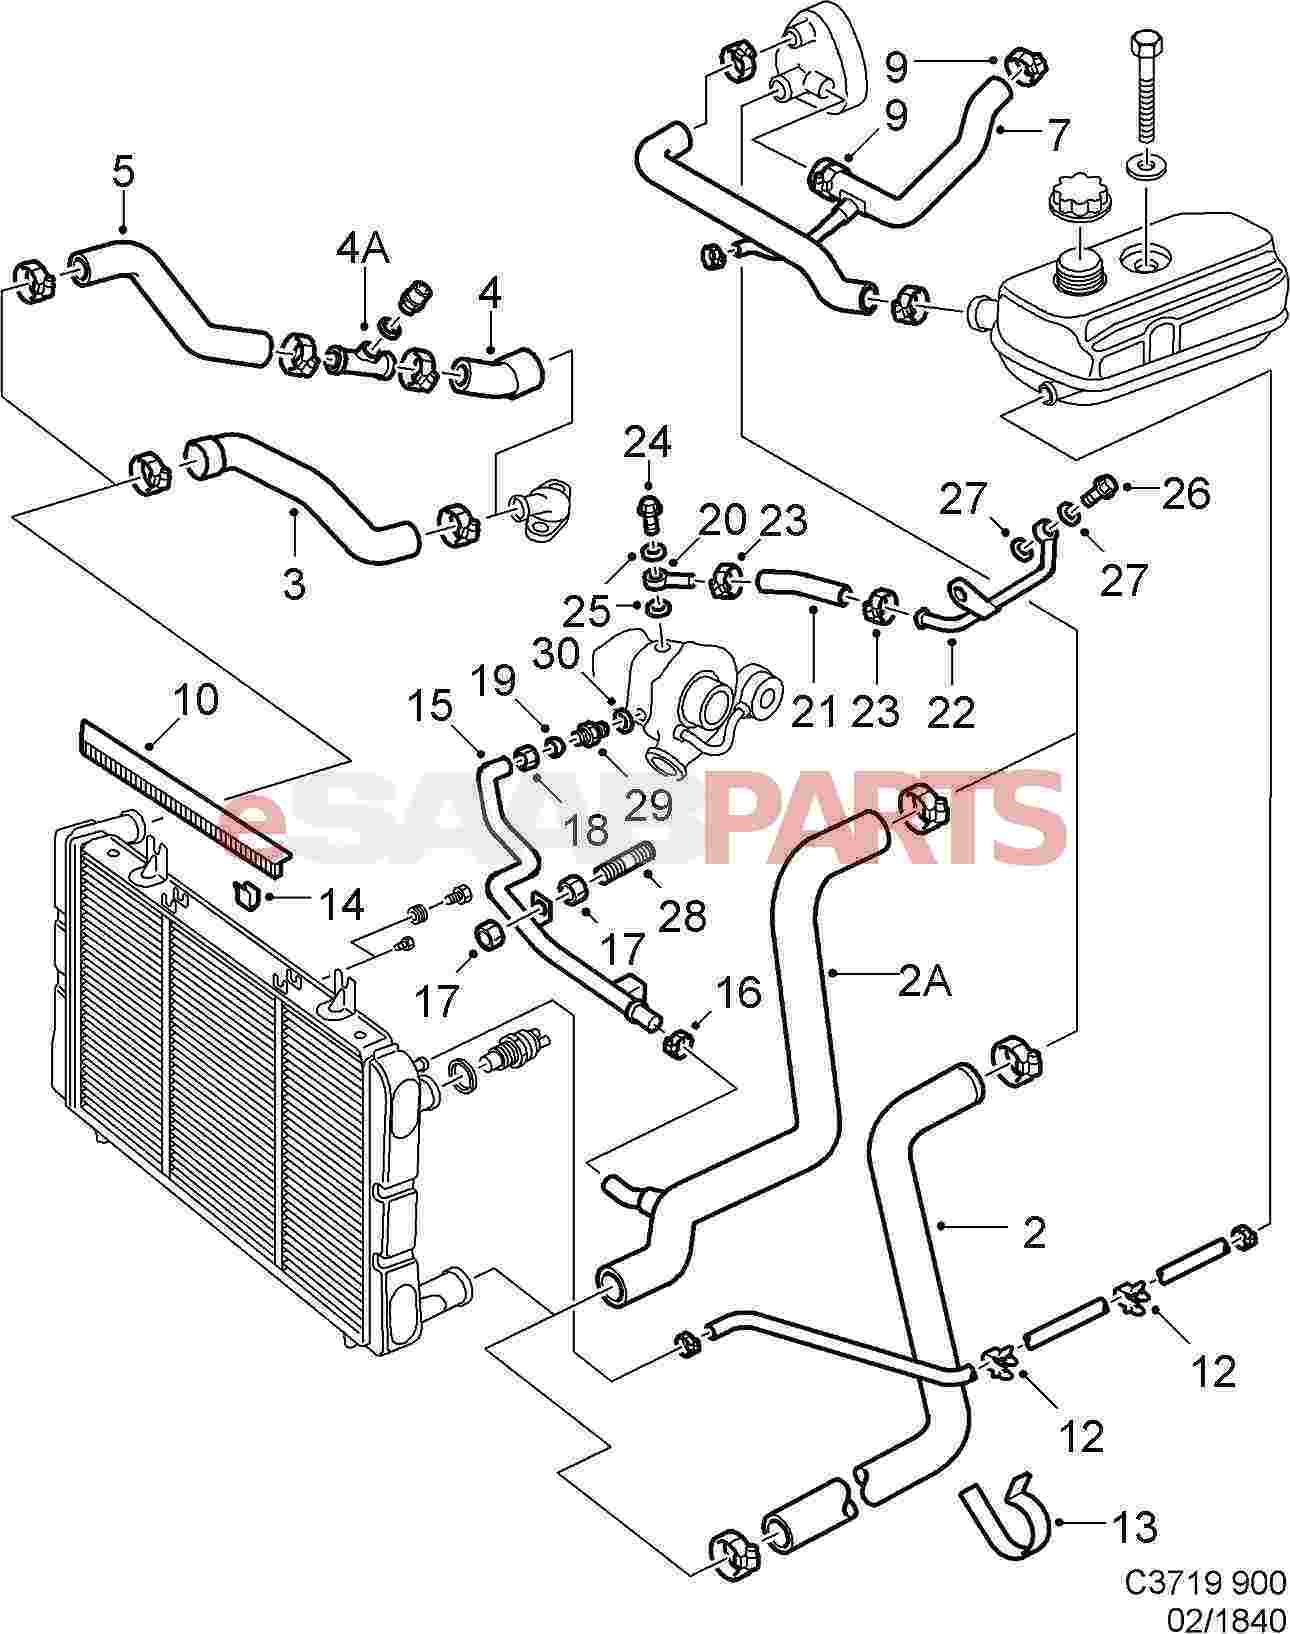 3 5 olds engine diagram 10 10 malawi24 de V8 Chevy Engine Carb Legal 1998 olds 3 5 engine diagram wiring diagram rh 30 sandroviletta ch 4 3l vortec engine diagram 5 3 liter chevy engine diagram